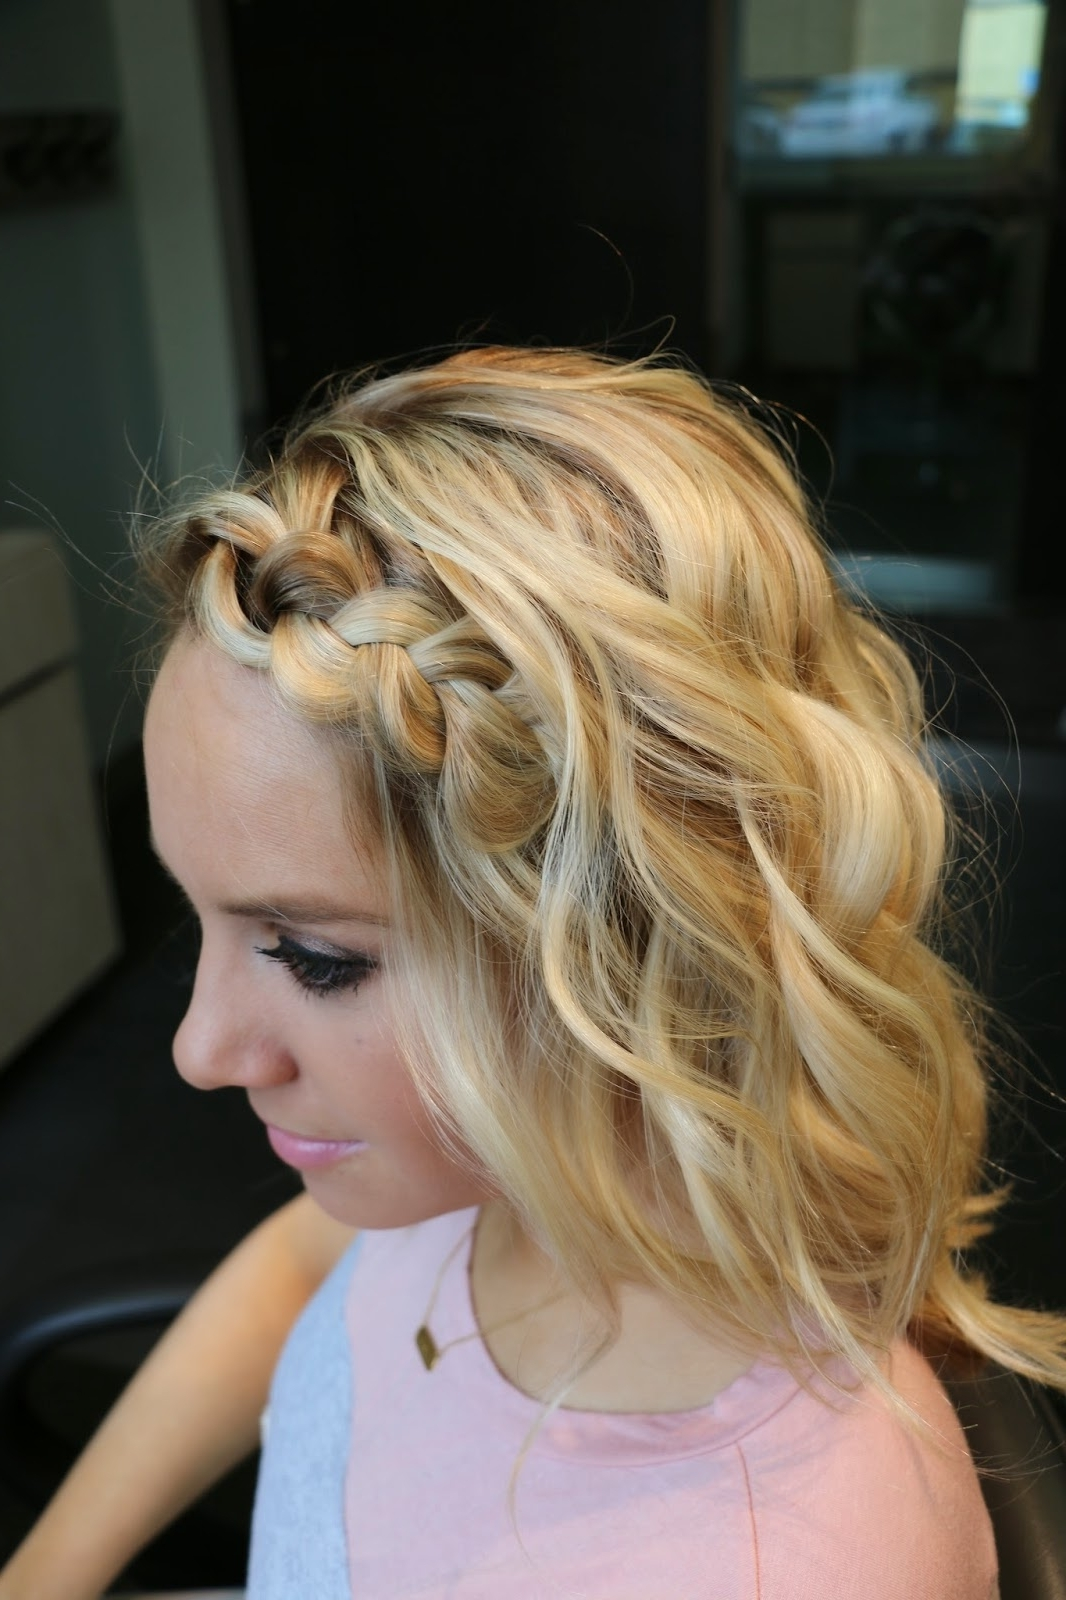 Widely Used Beachy Braids Hairstyles Throughout Stylin In St. Louis: Beachy Waves And Braids Tutorial + A Giveaway… (View 20 of 20)